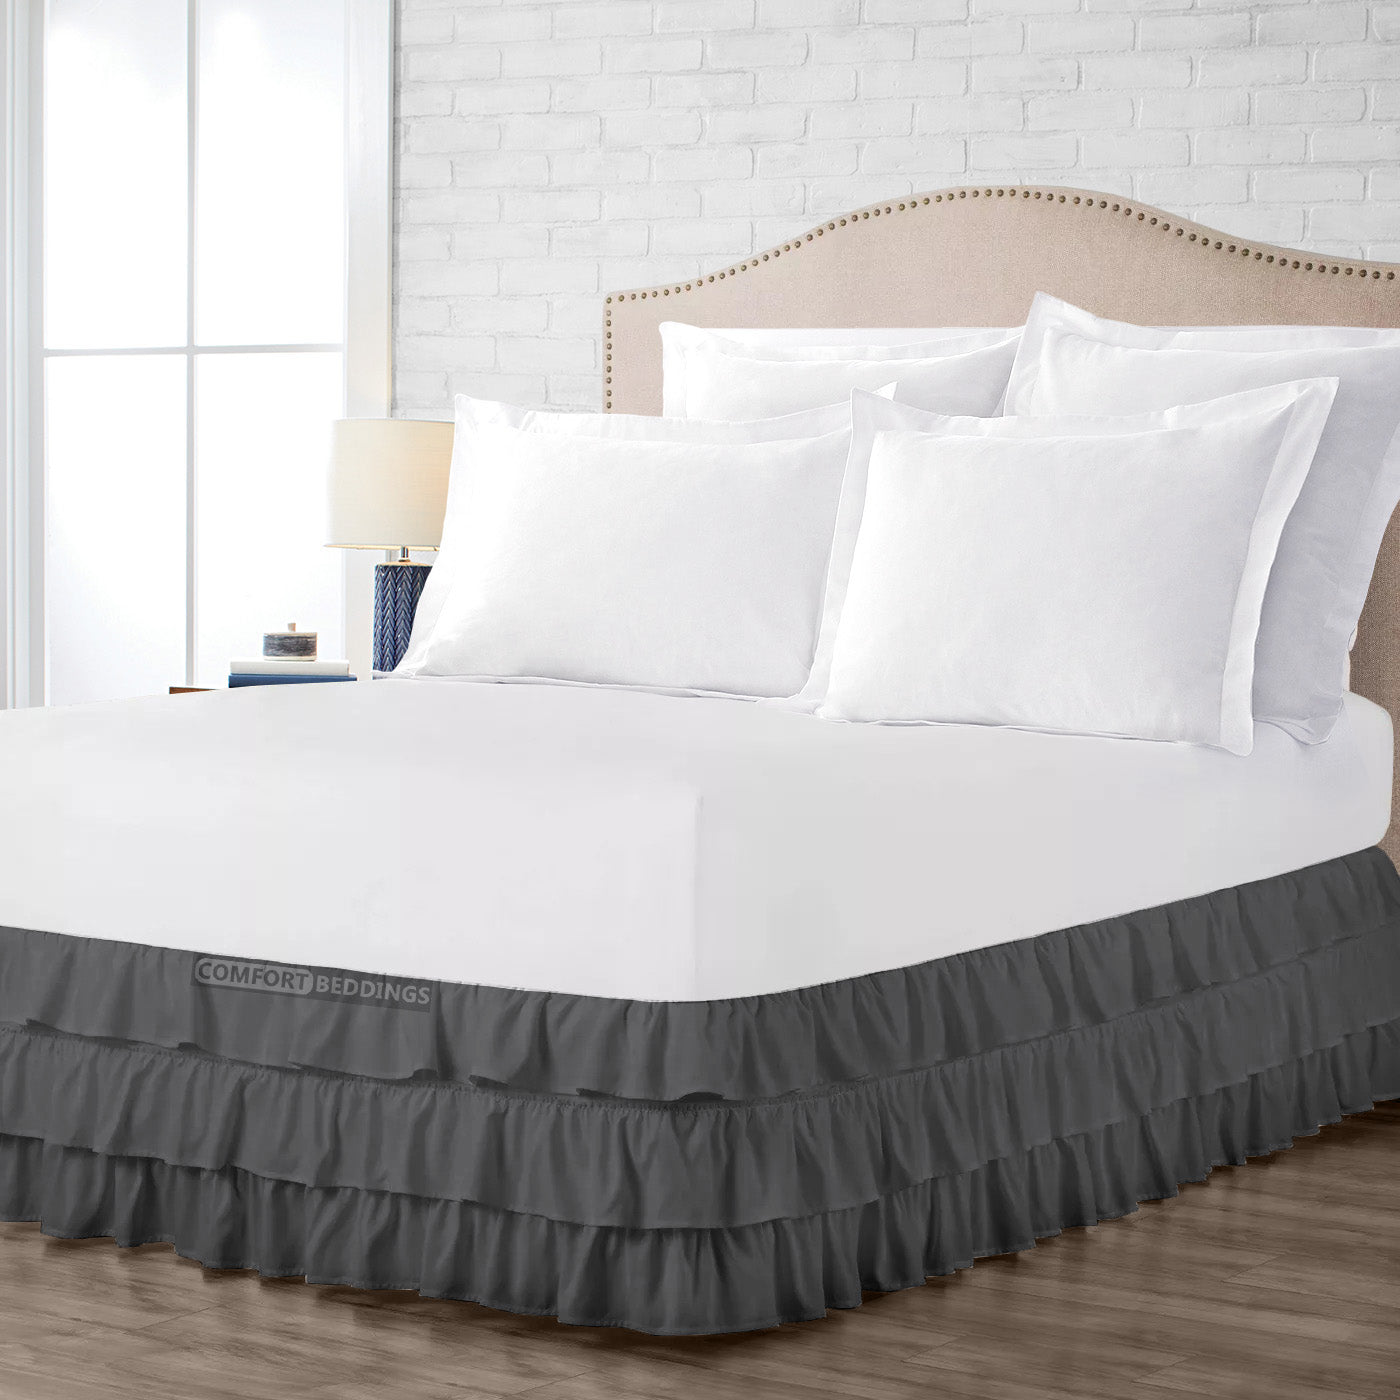 1000 Thread Count Dark Grey Multi Ruffled Bed Skirt